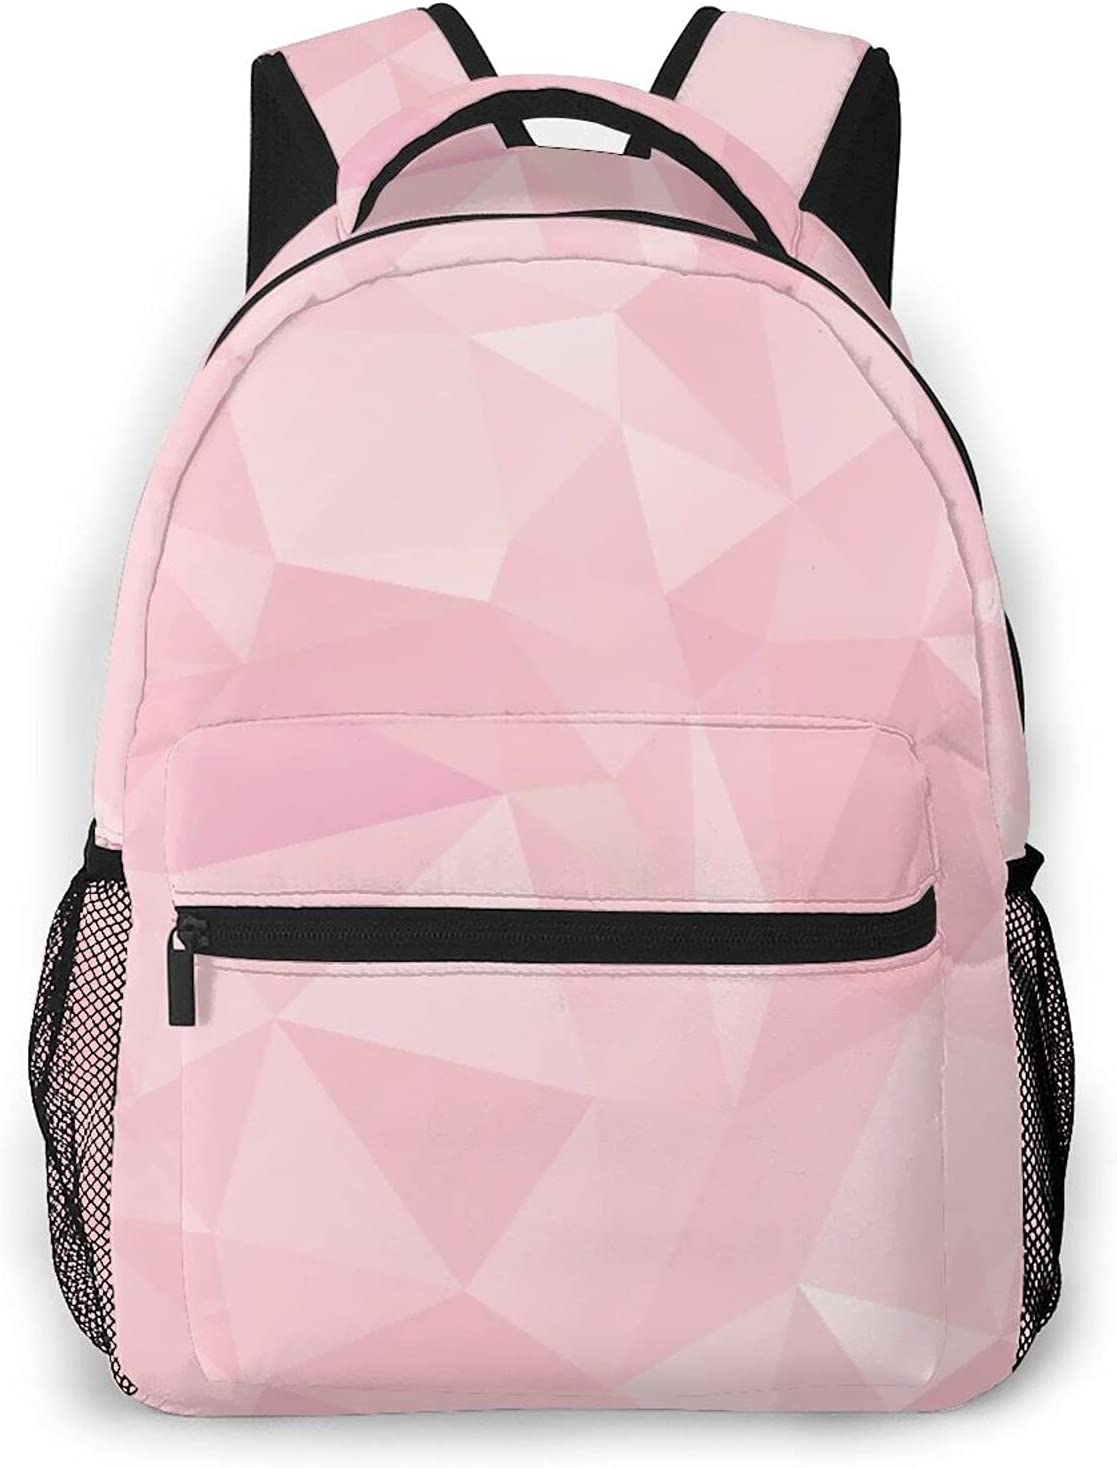 Backpack for Teens Dallas Mall Men Women Polygon Packet Irregular Storage supreme Of